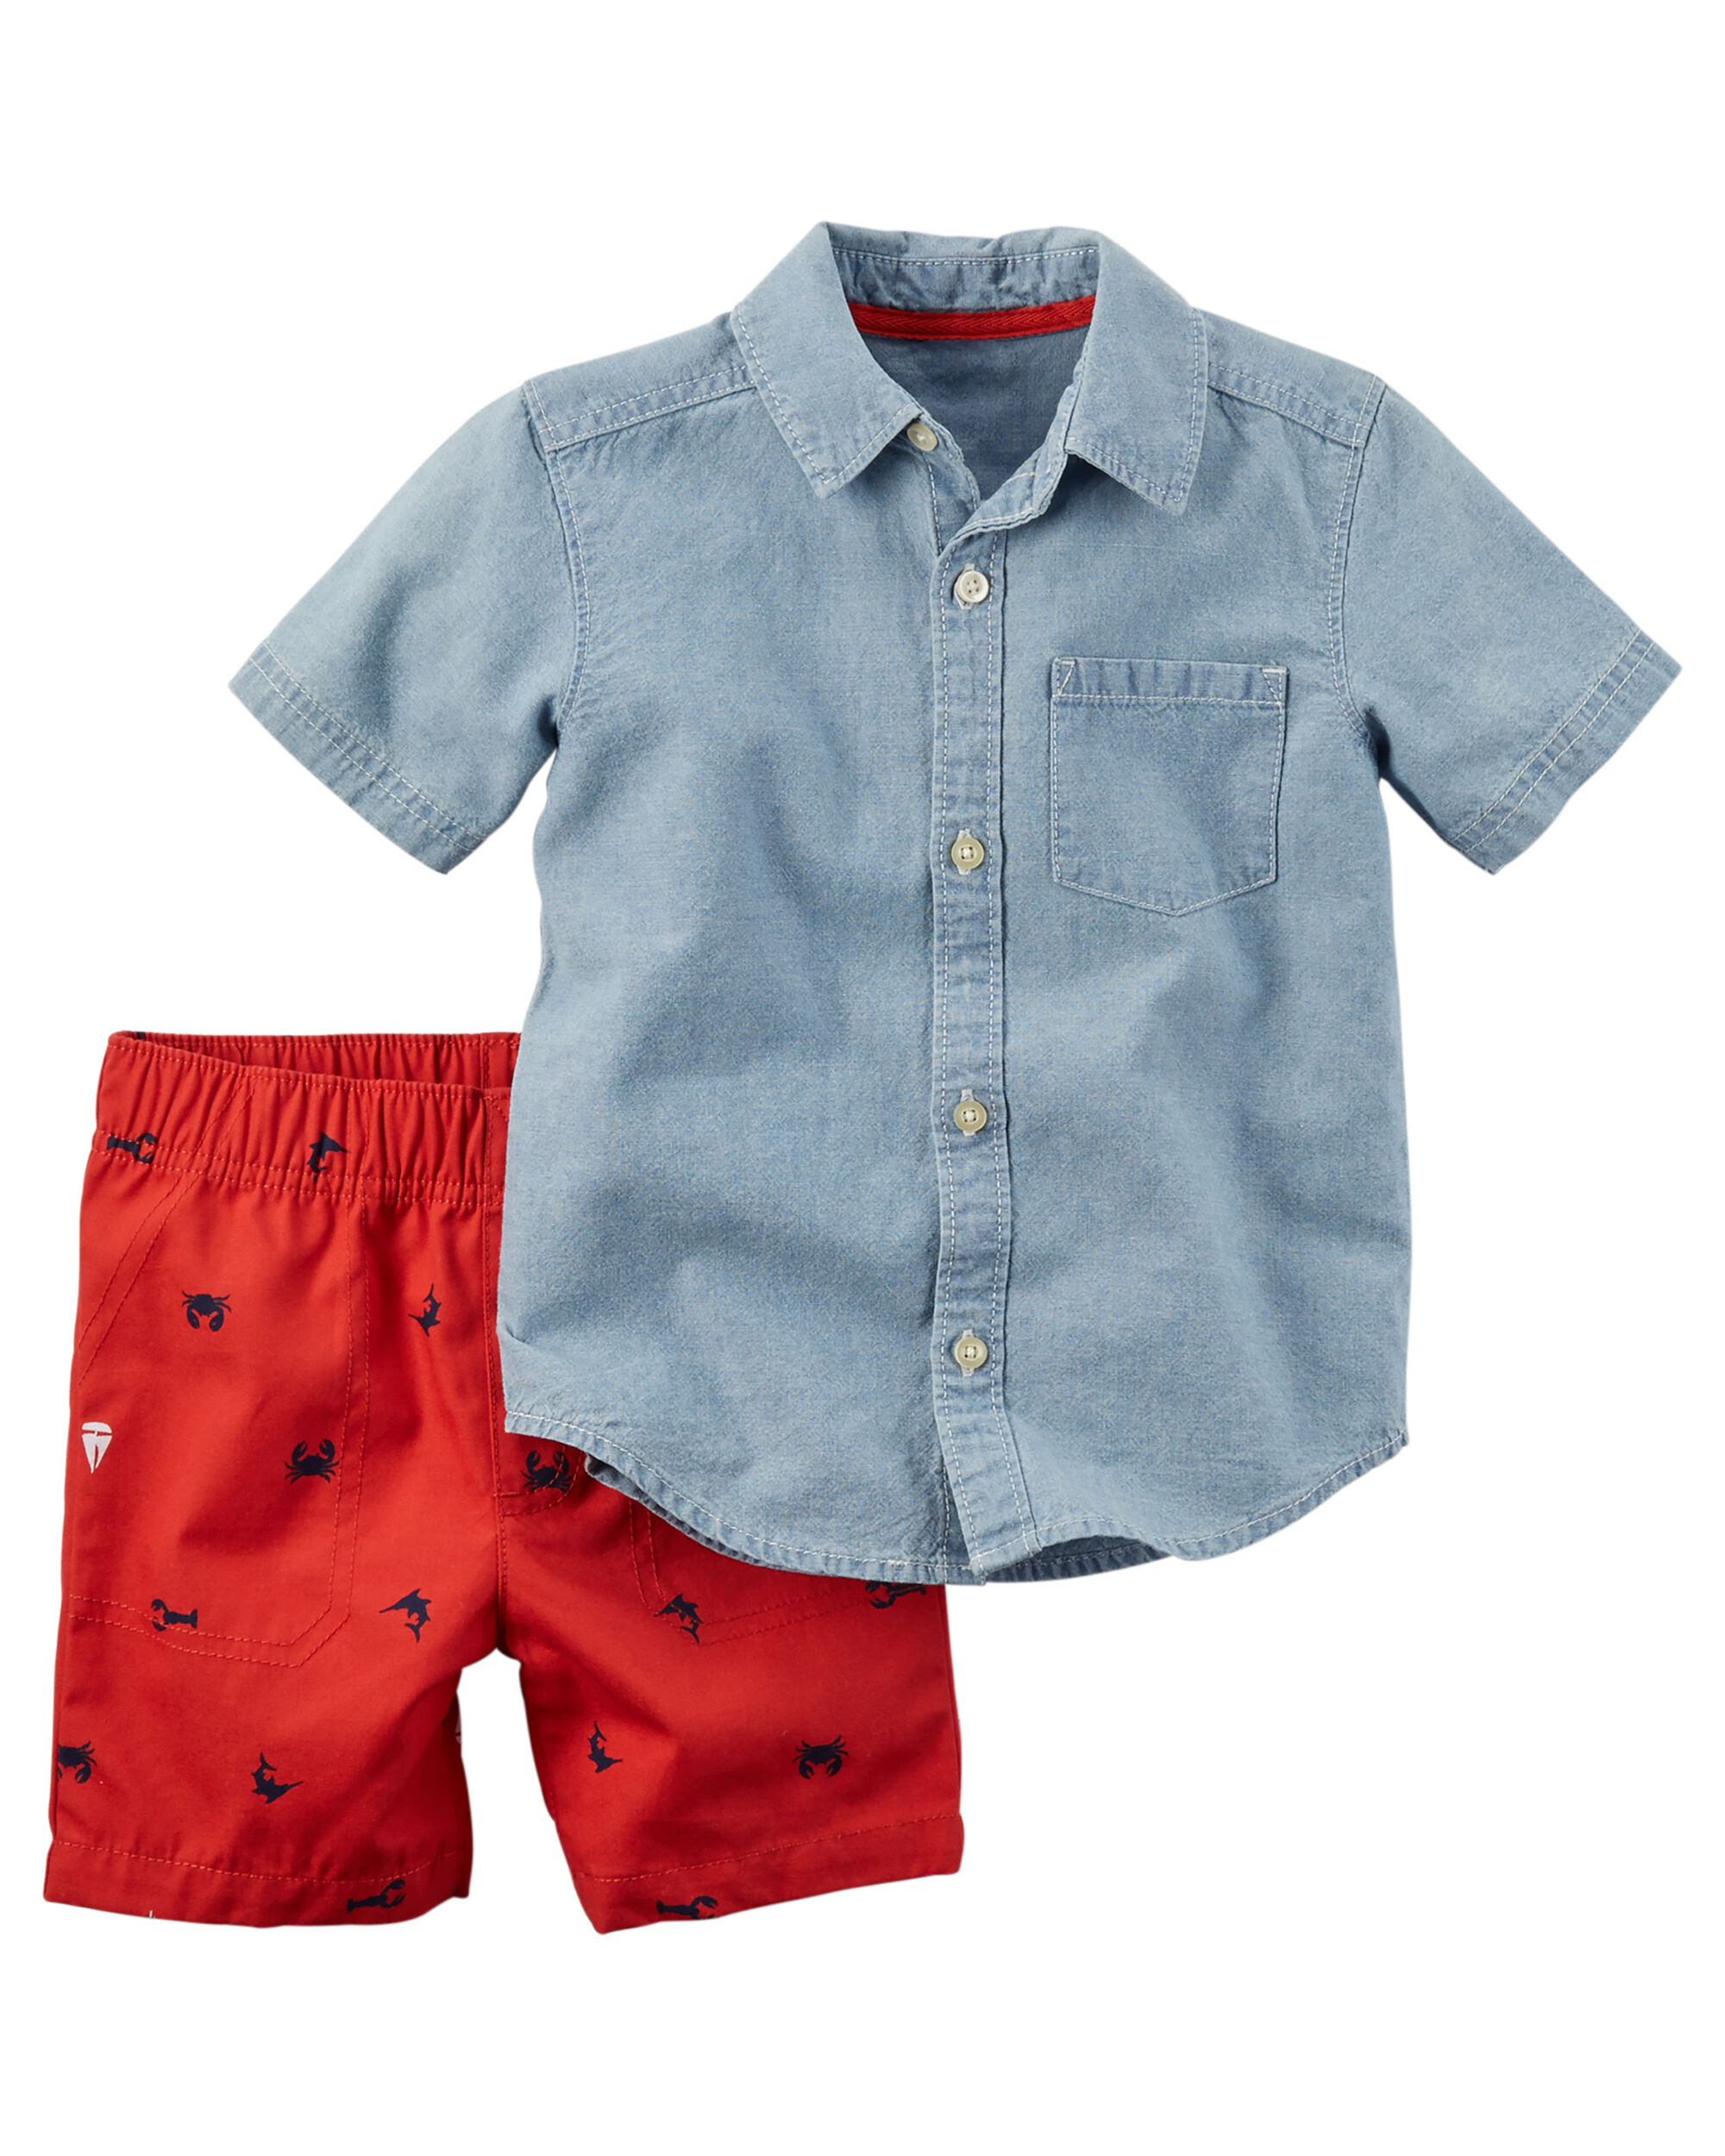 Carters baby clothing store near me